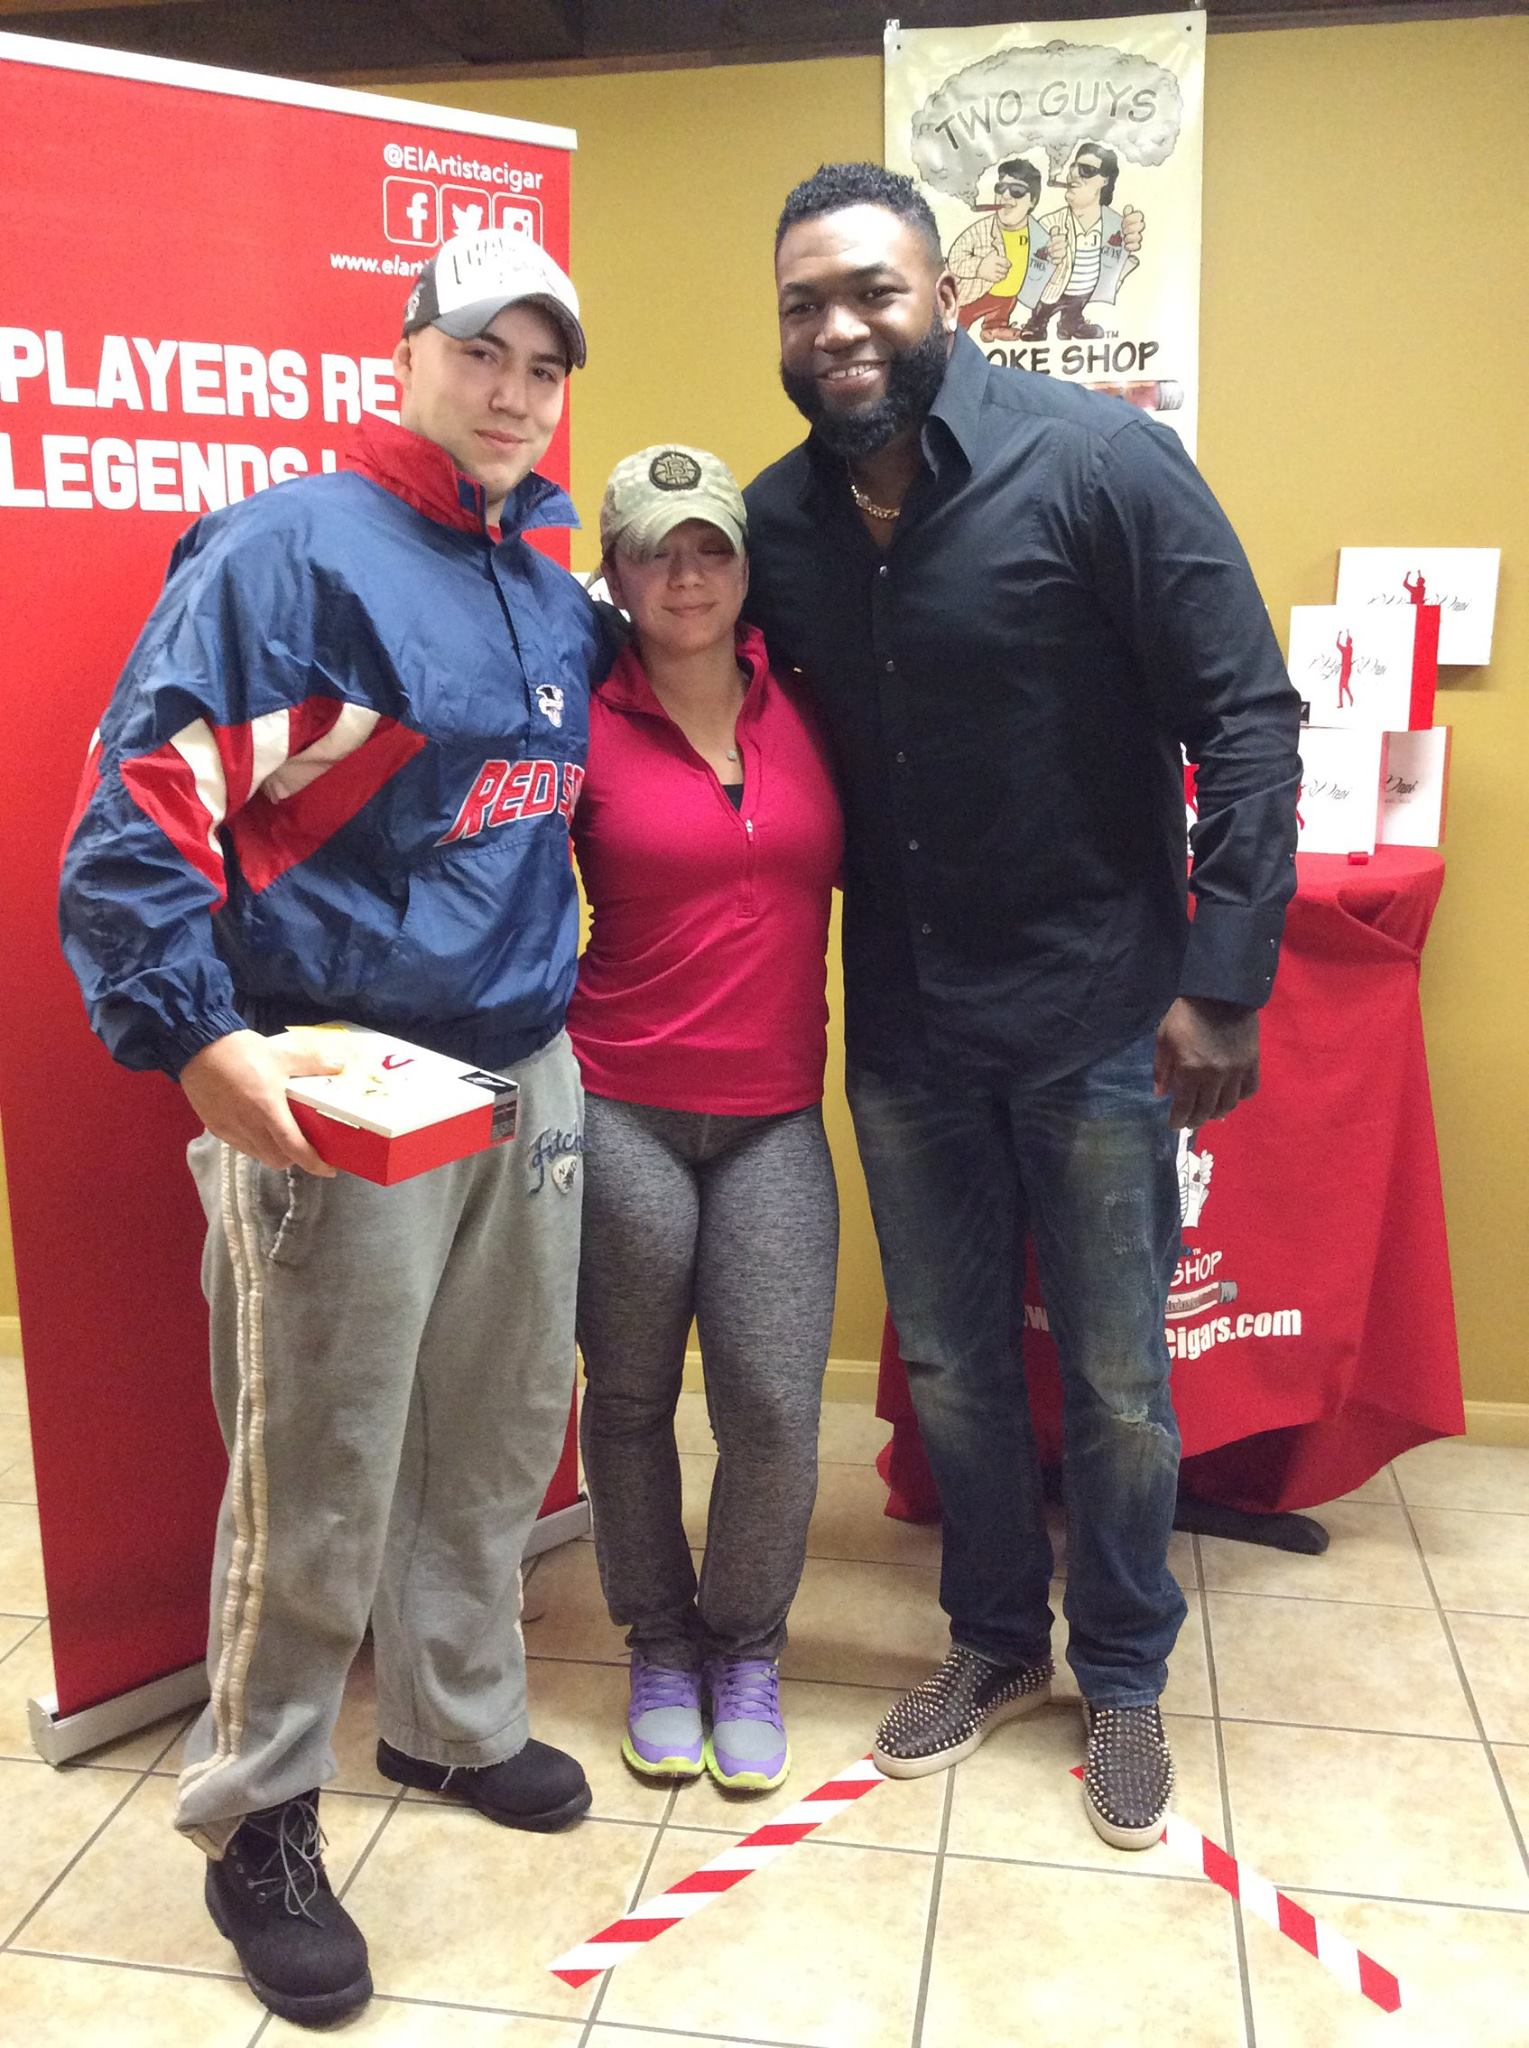 David Ortiz Visits Two Guys Smoke Shop Salem